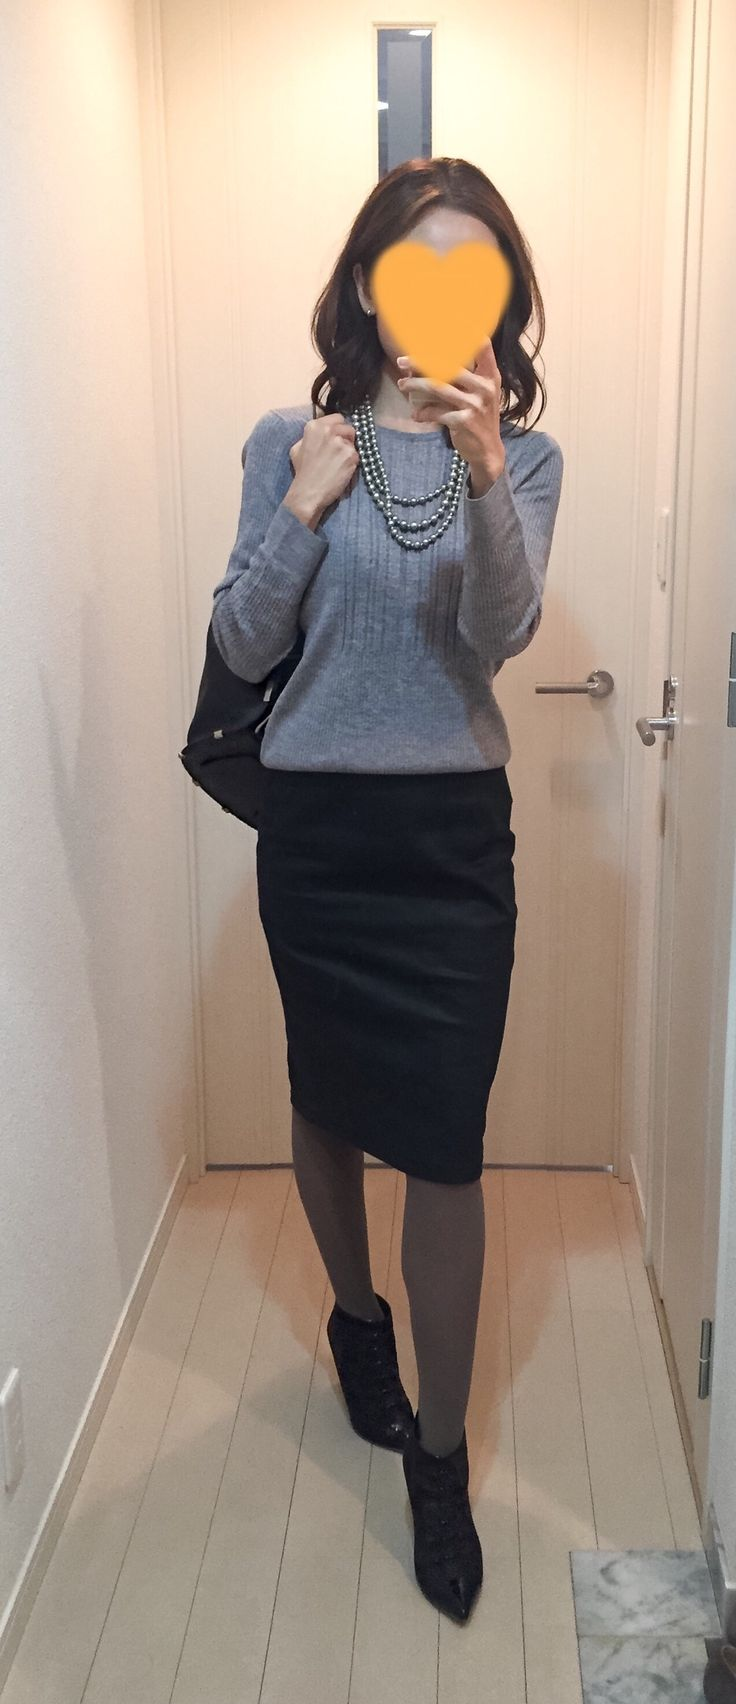 Grey sweater: Des Pres, Faux leather skirt: Sisley, Bag: ZAC Zac Posen, Boots: Fabio Rusconi